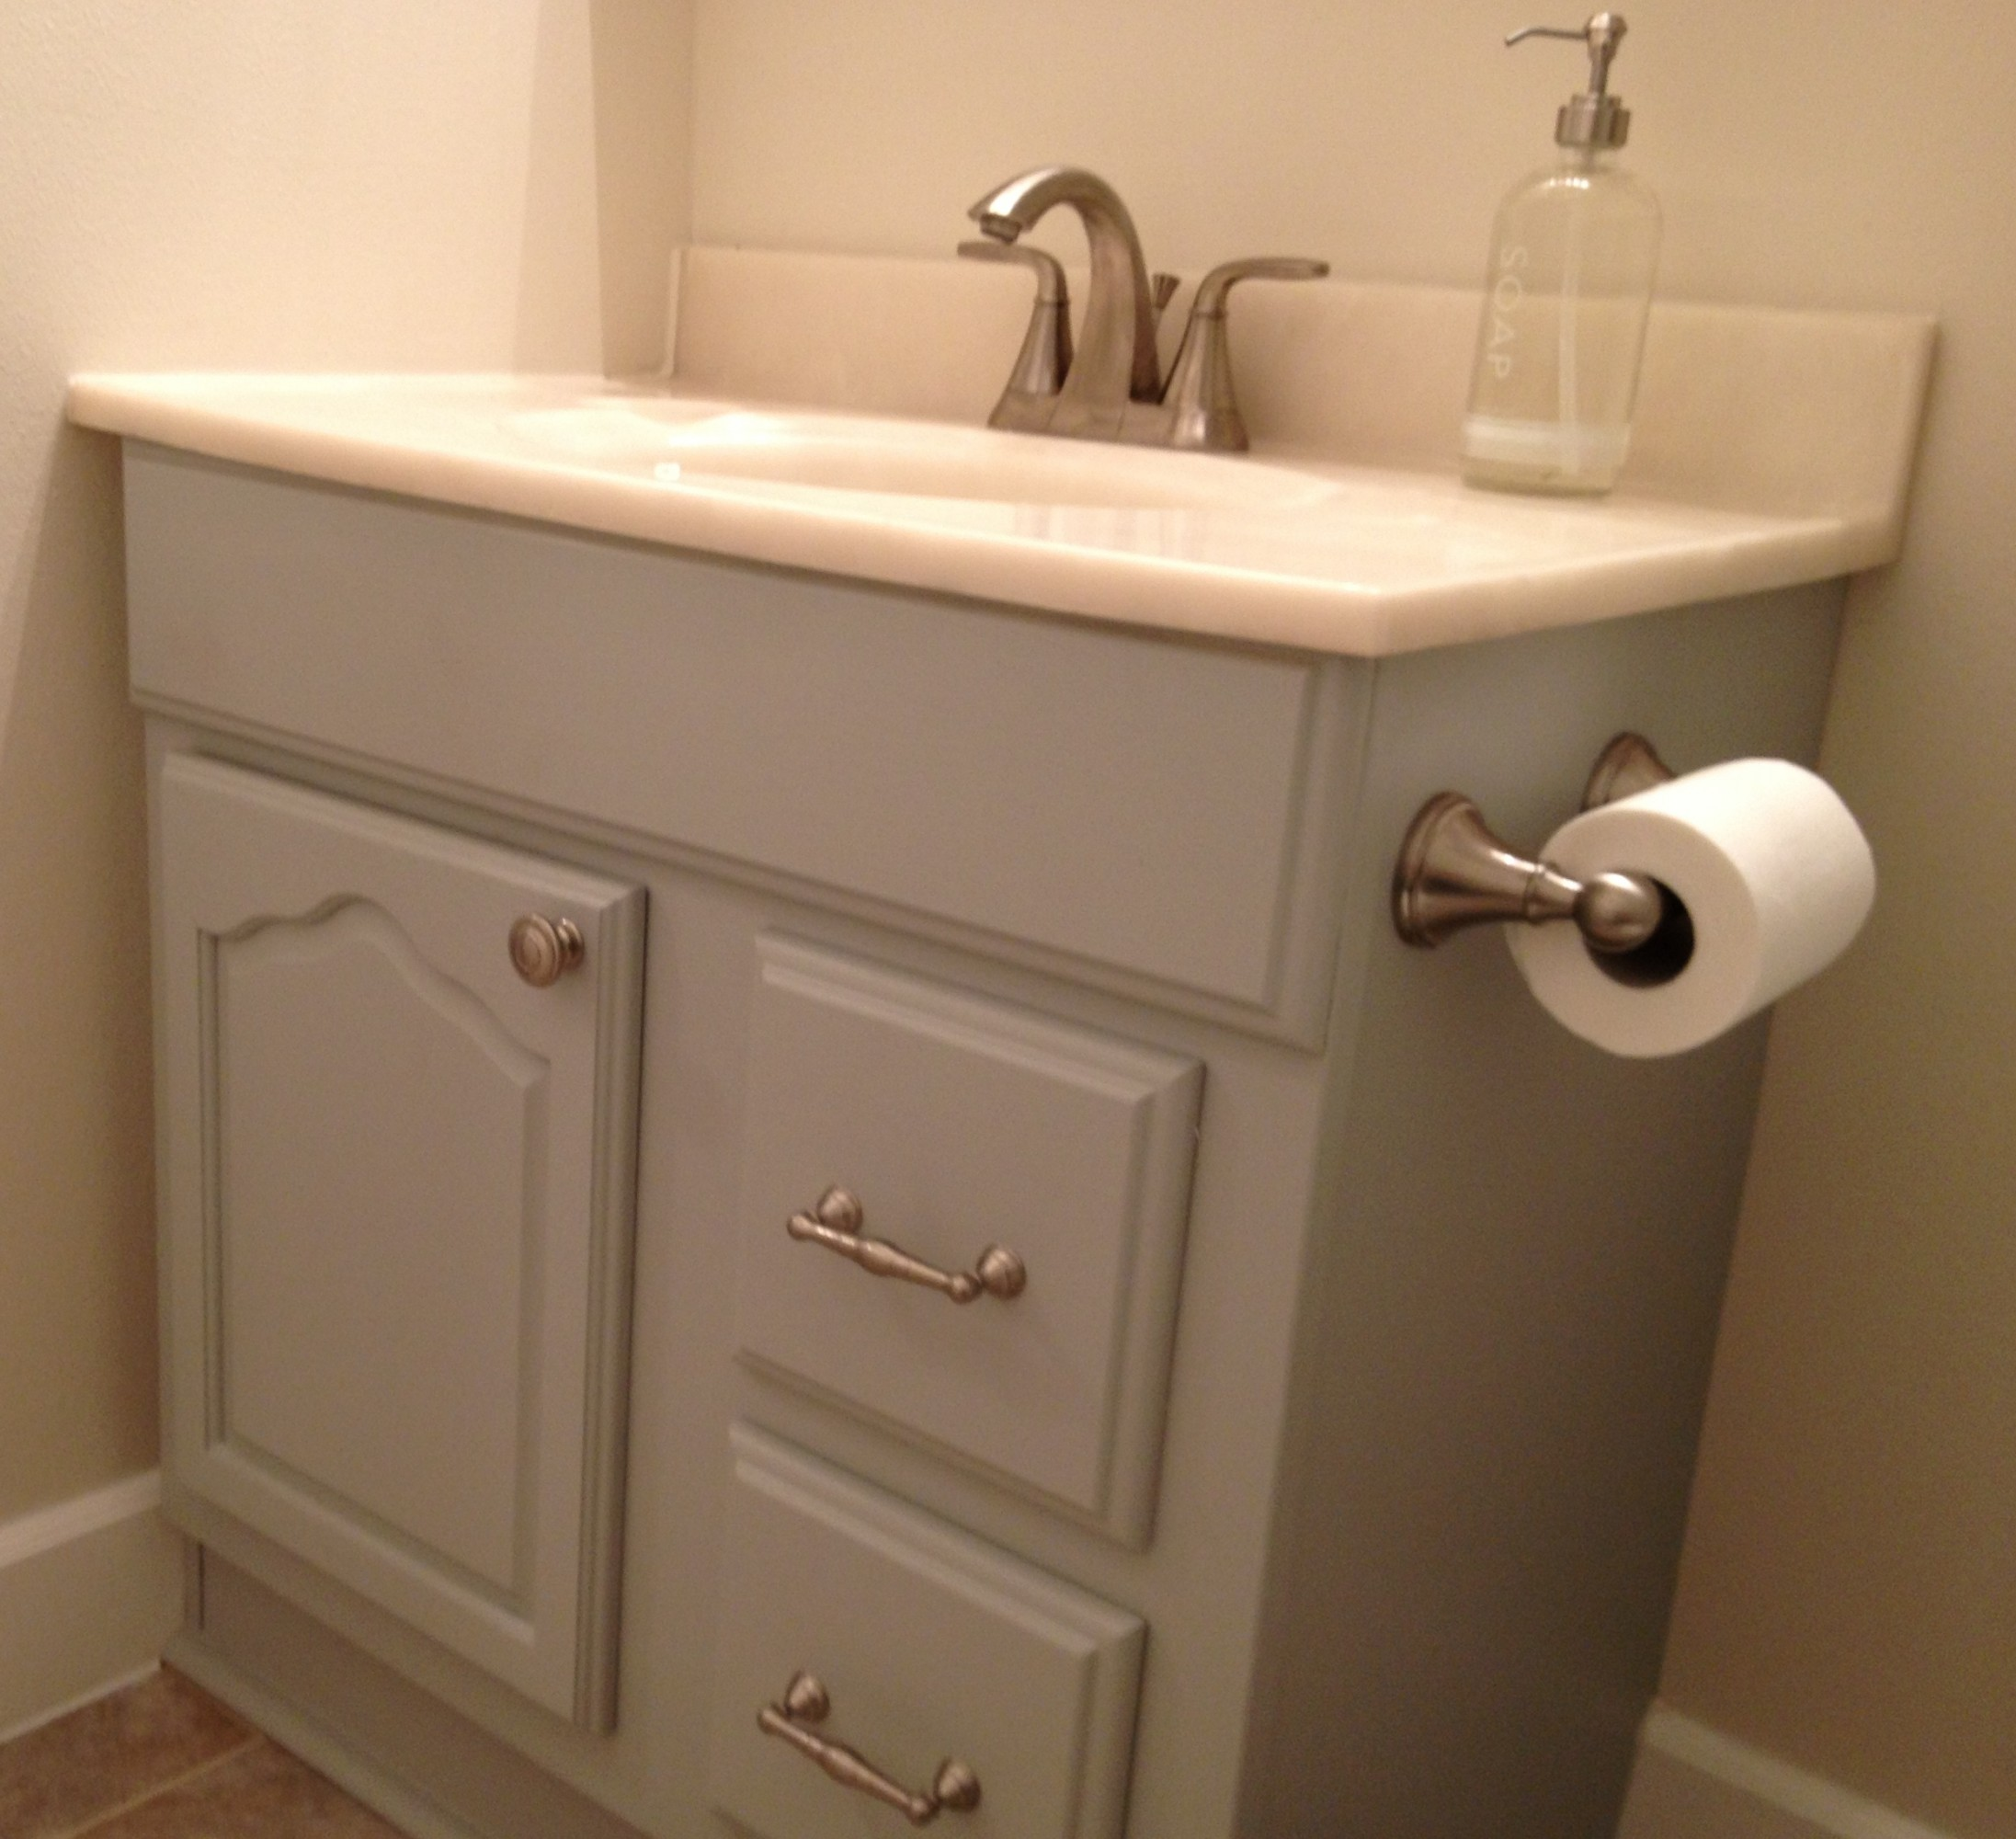 Home depot bathroom designs homesfeed - Home depot bathroom design ...